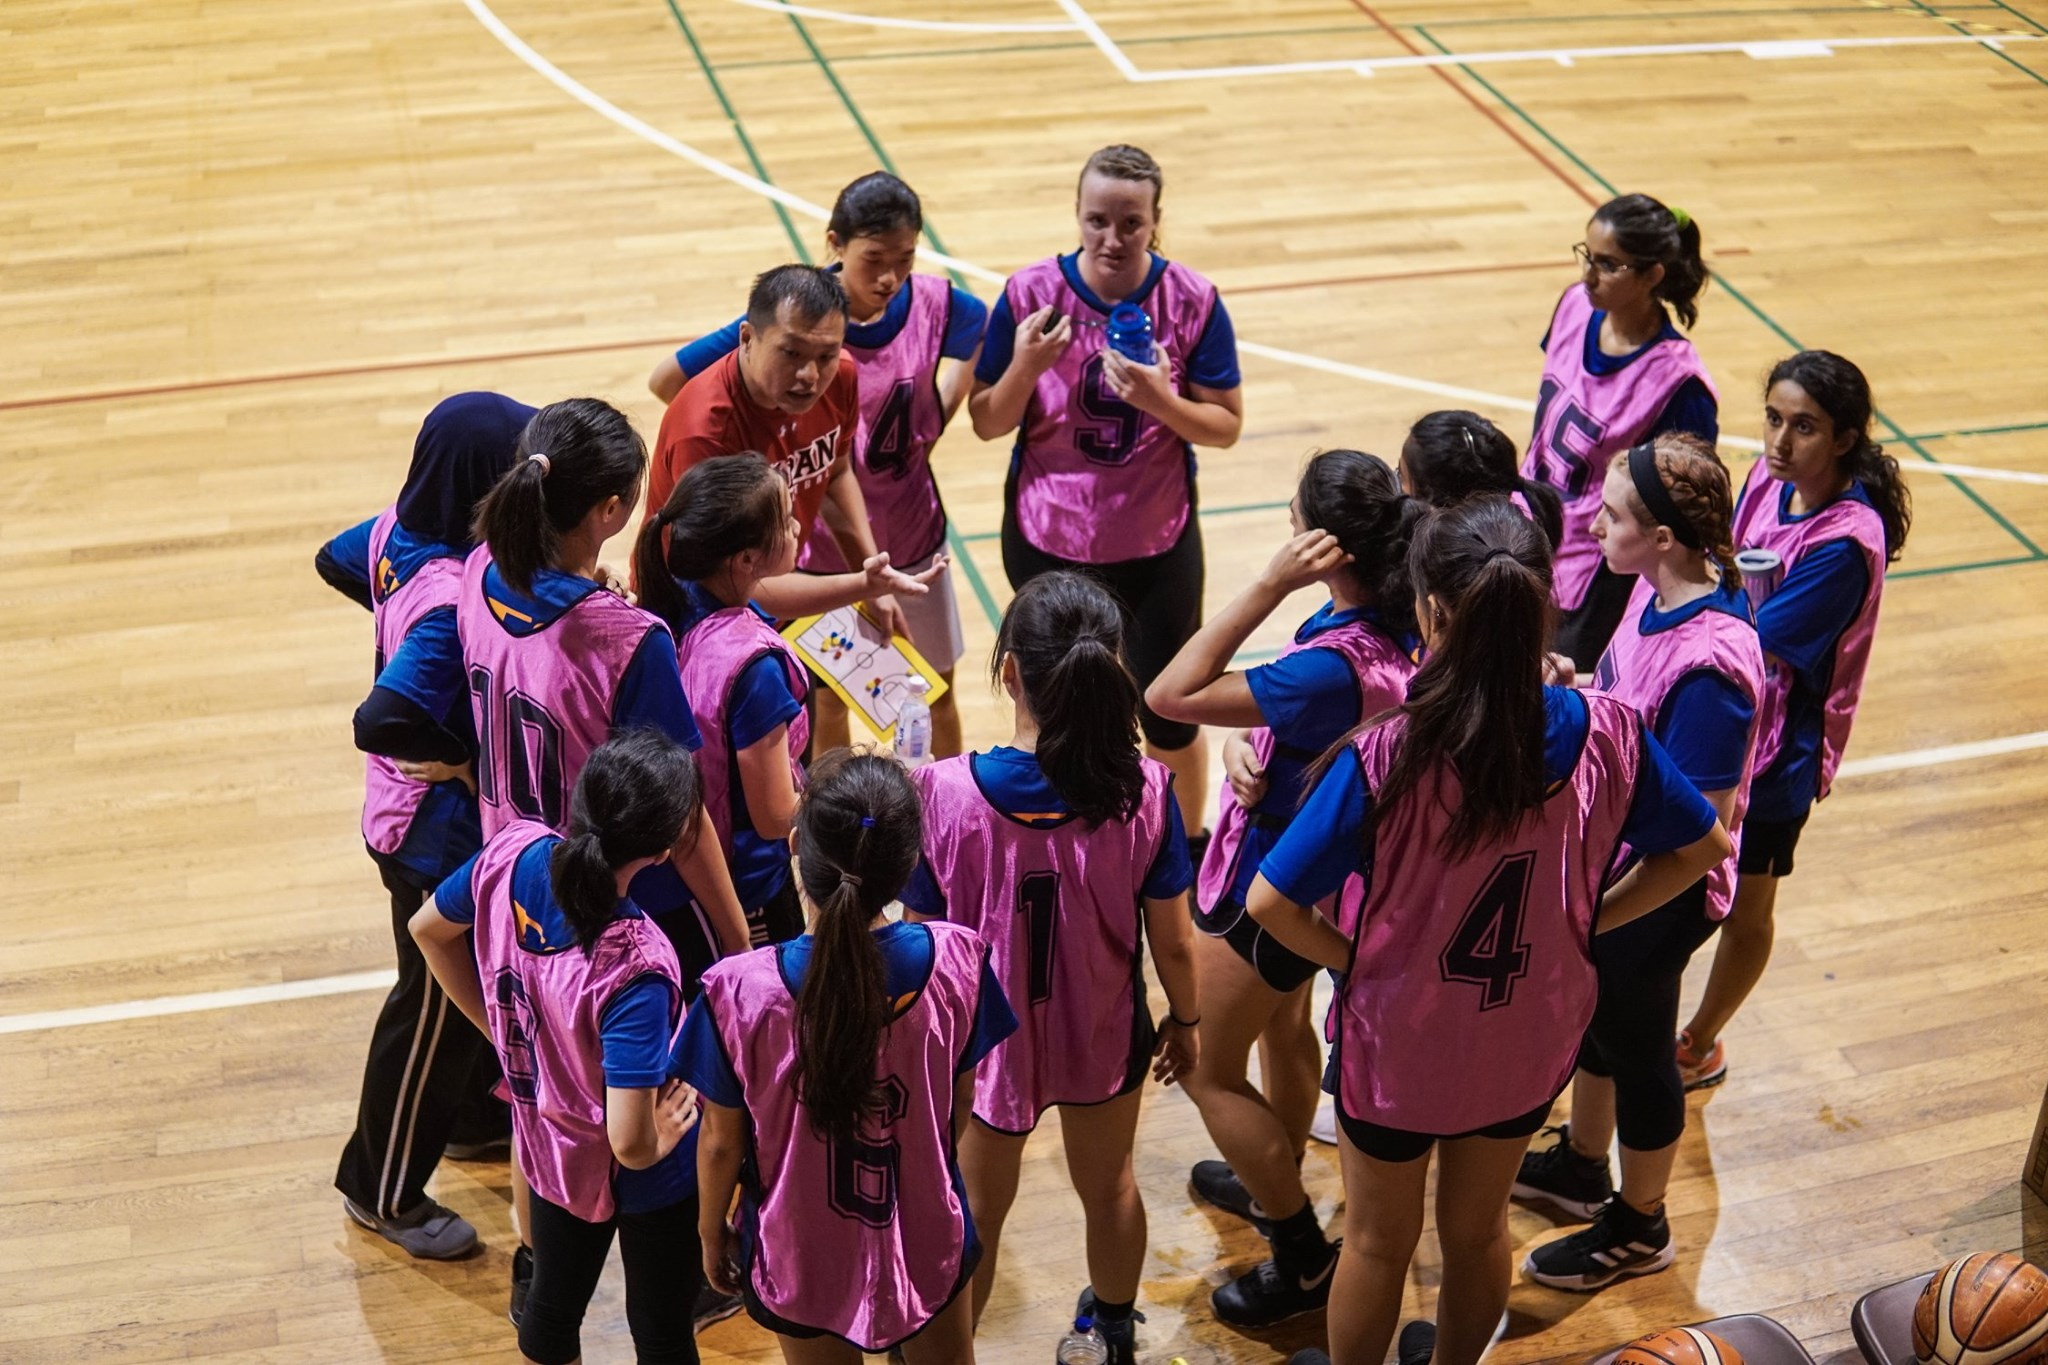 Yale-NUS Comes 8th for Inter-Faculty Games